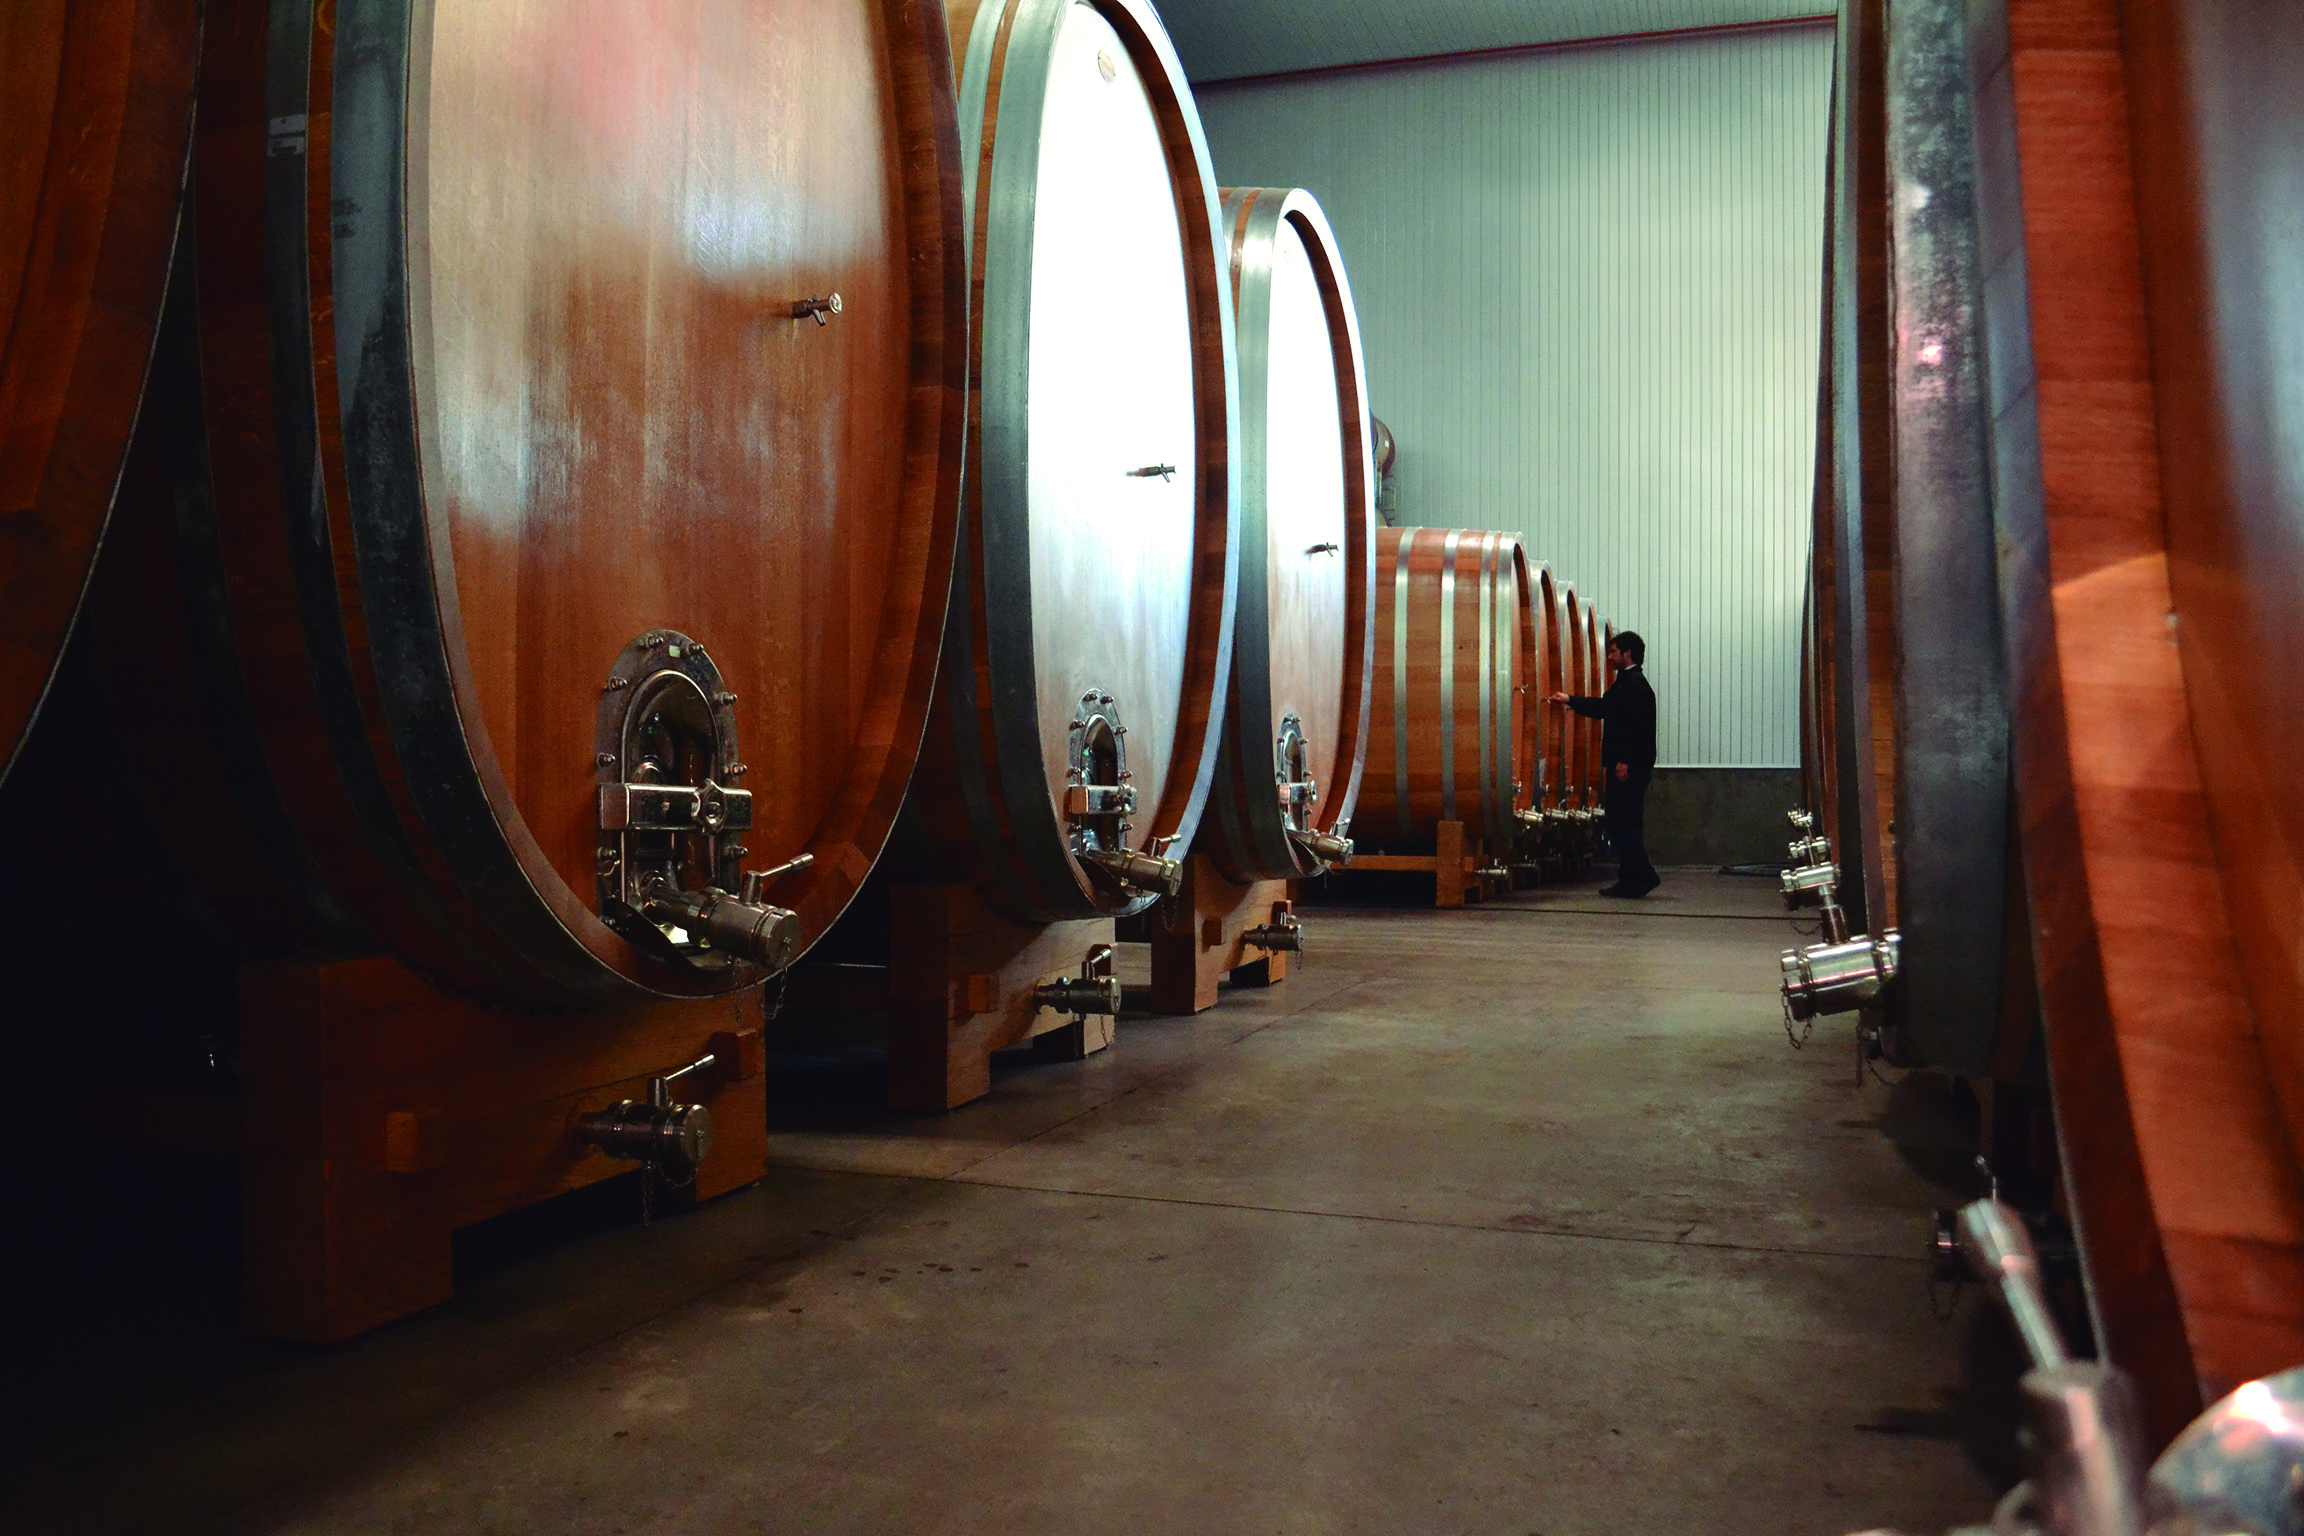 Those things are huge! Giant oak barrels in the winery